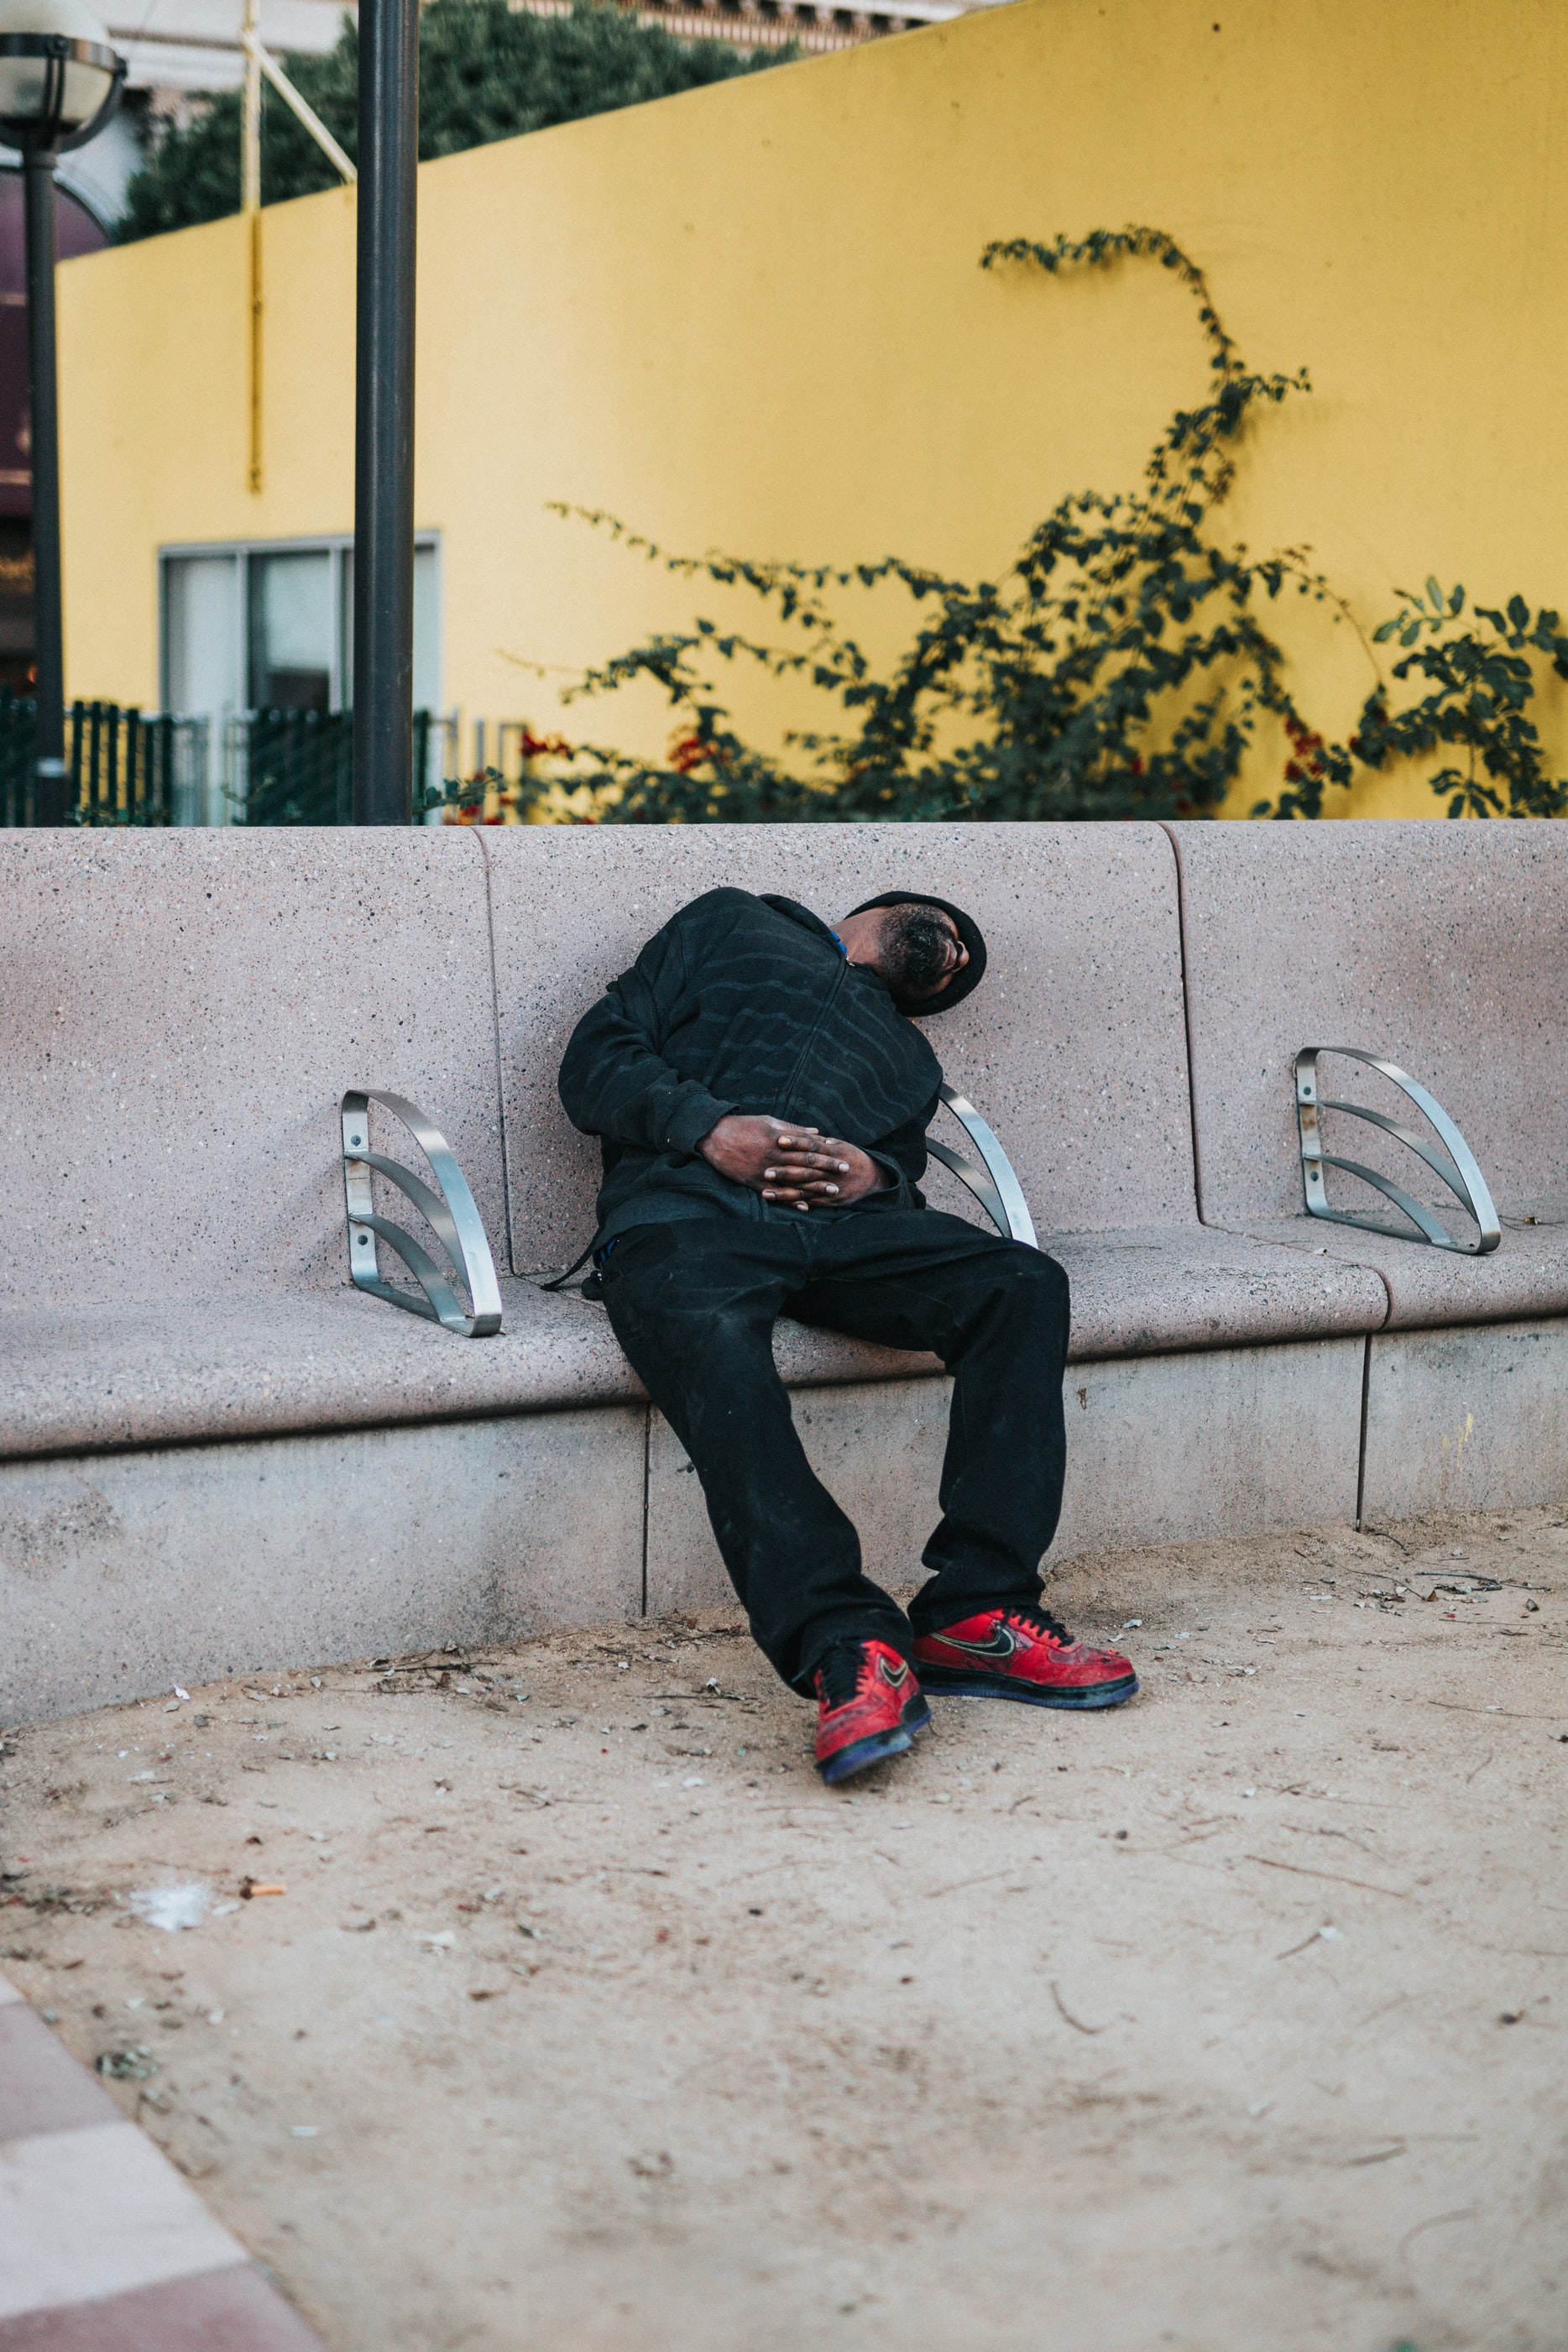 Homeless residents need individualized care & support